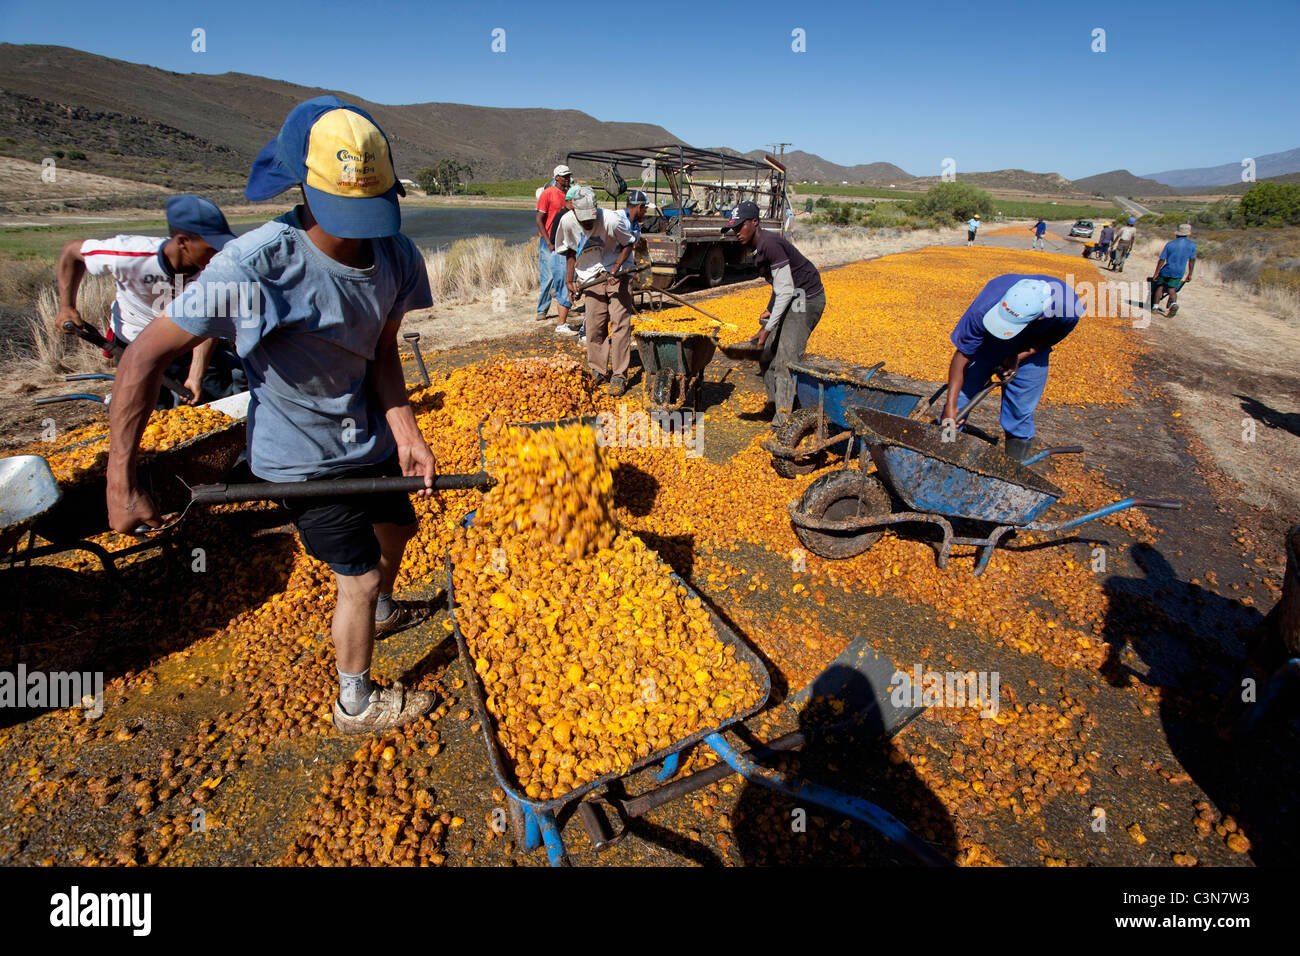 South Africa, Western Cape, near Barrydale, Collecting the nuts of dried apricots. - Stock Image